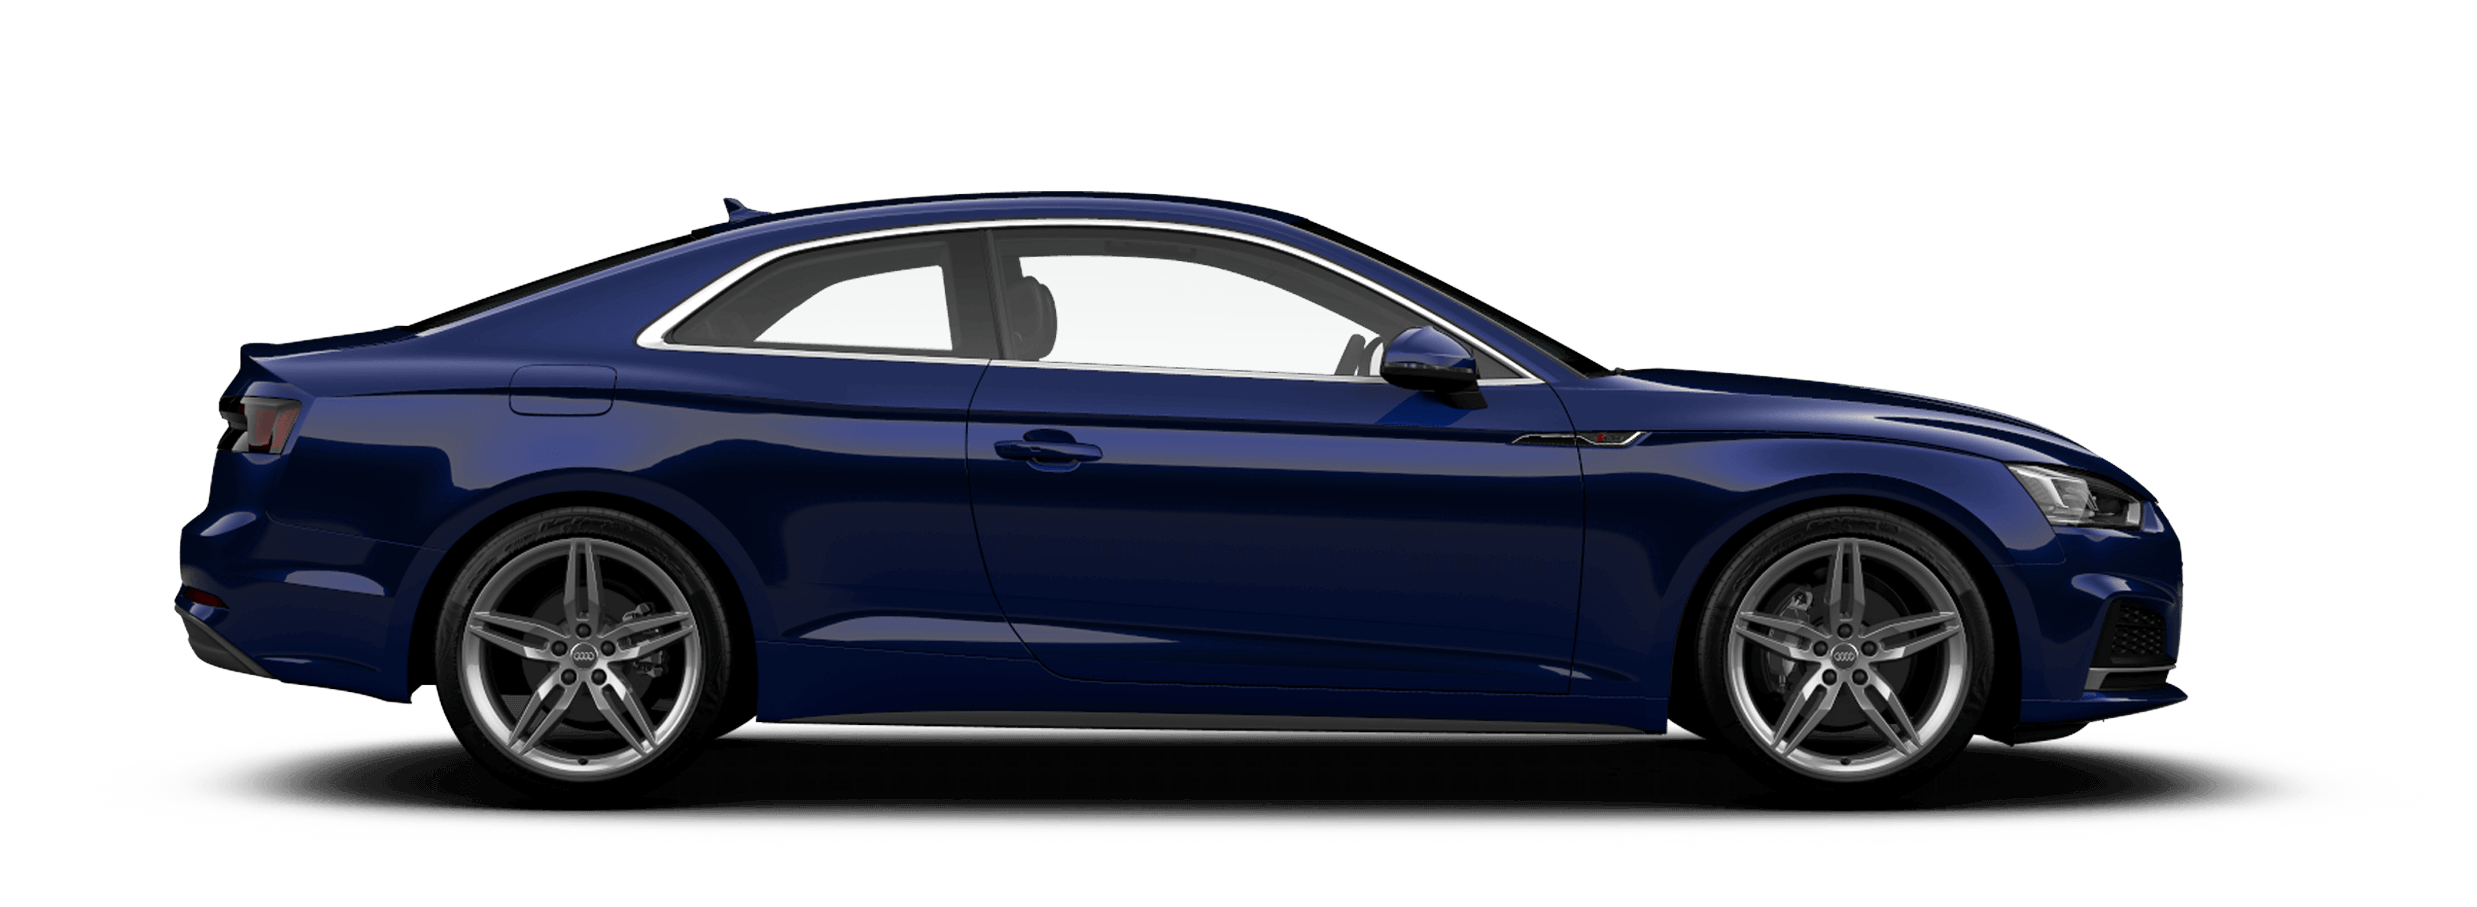 https://cogcms-images.azureedge.net/media/54490/rs-5-coupe.png